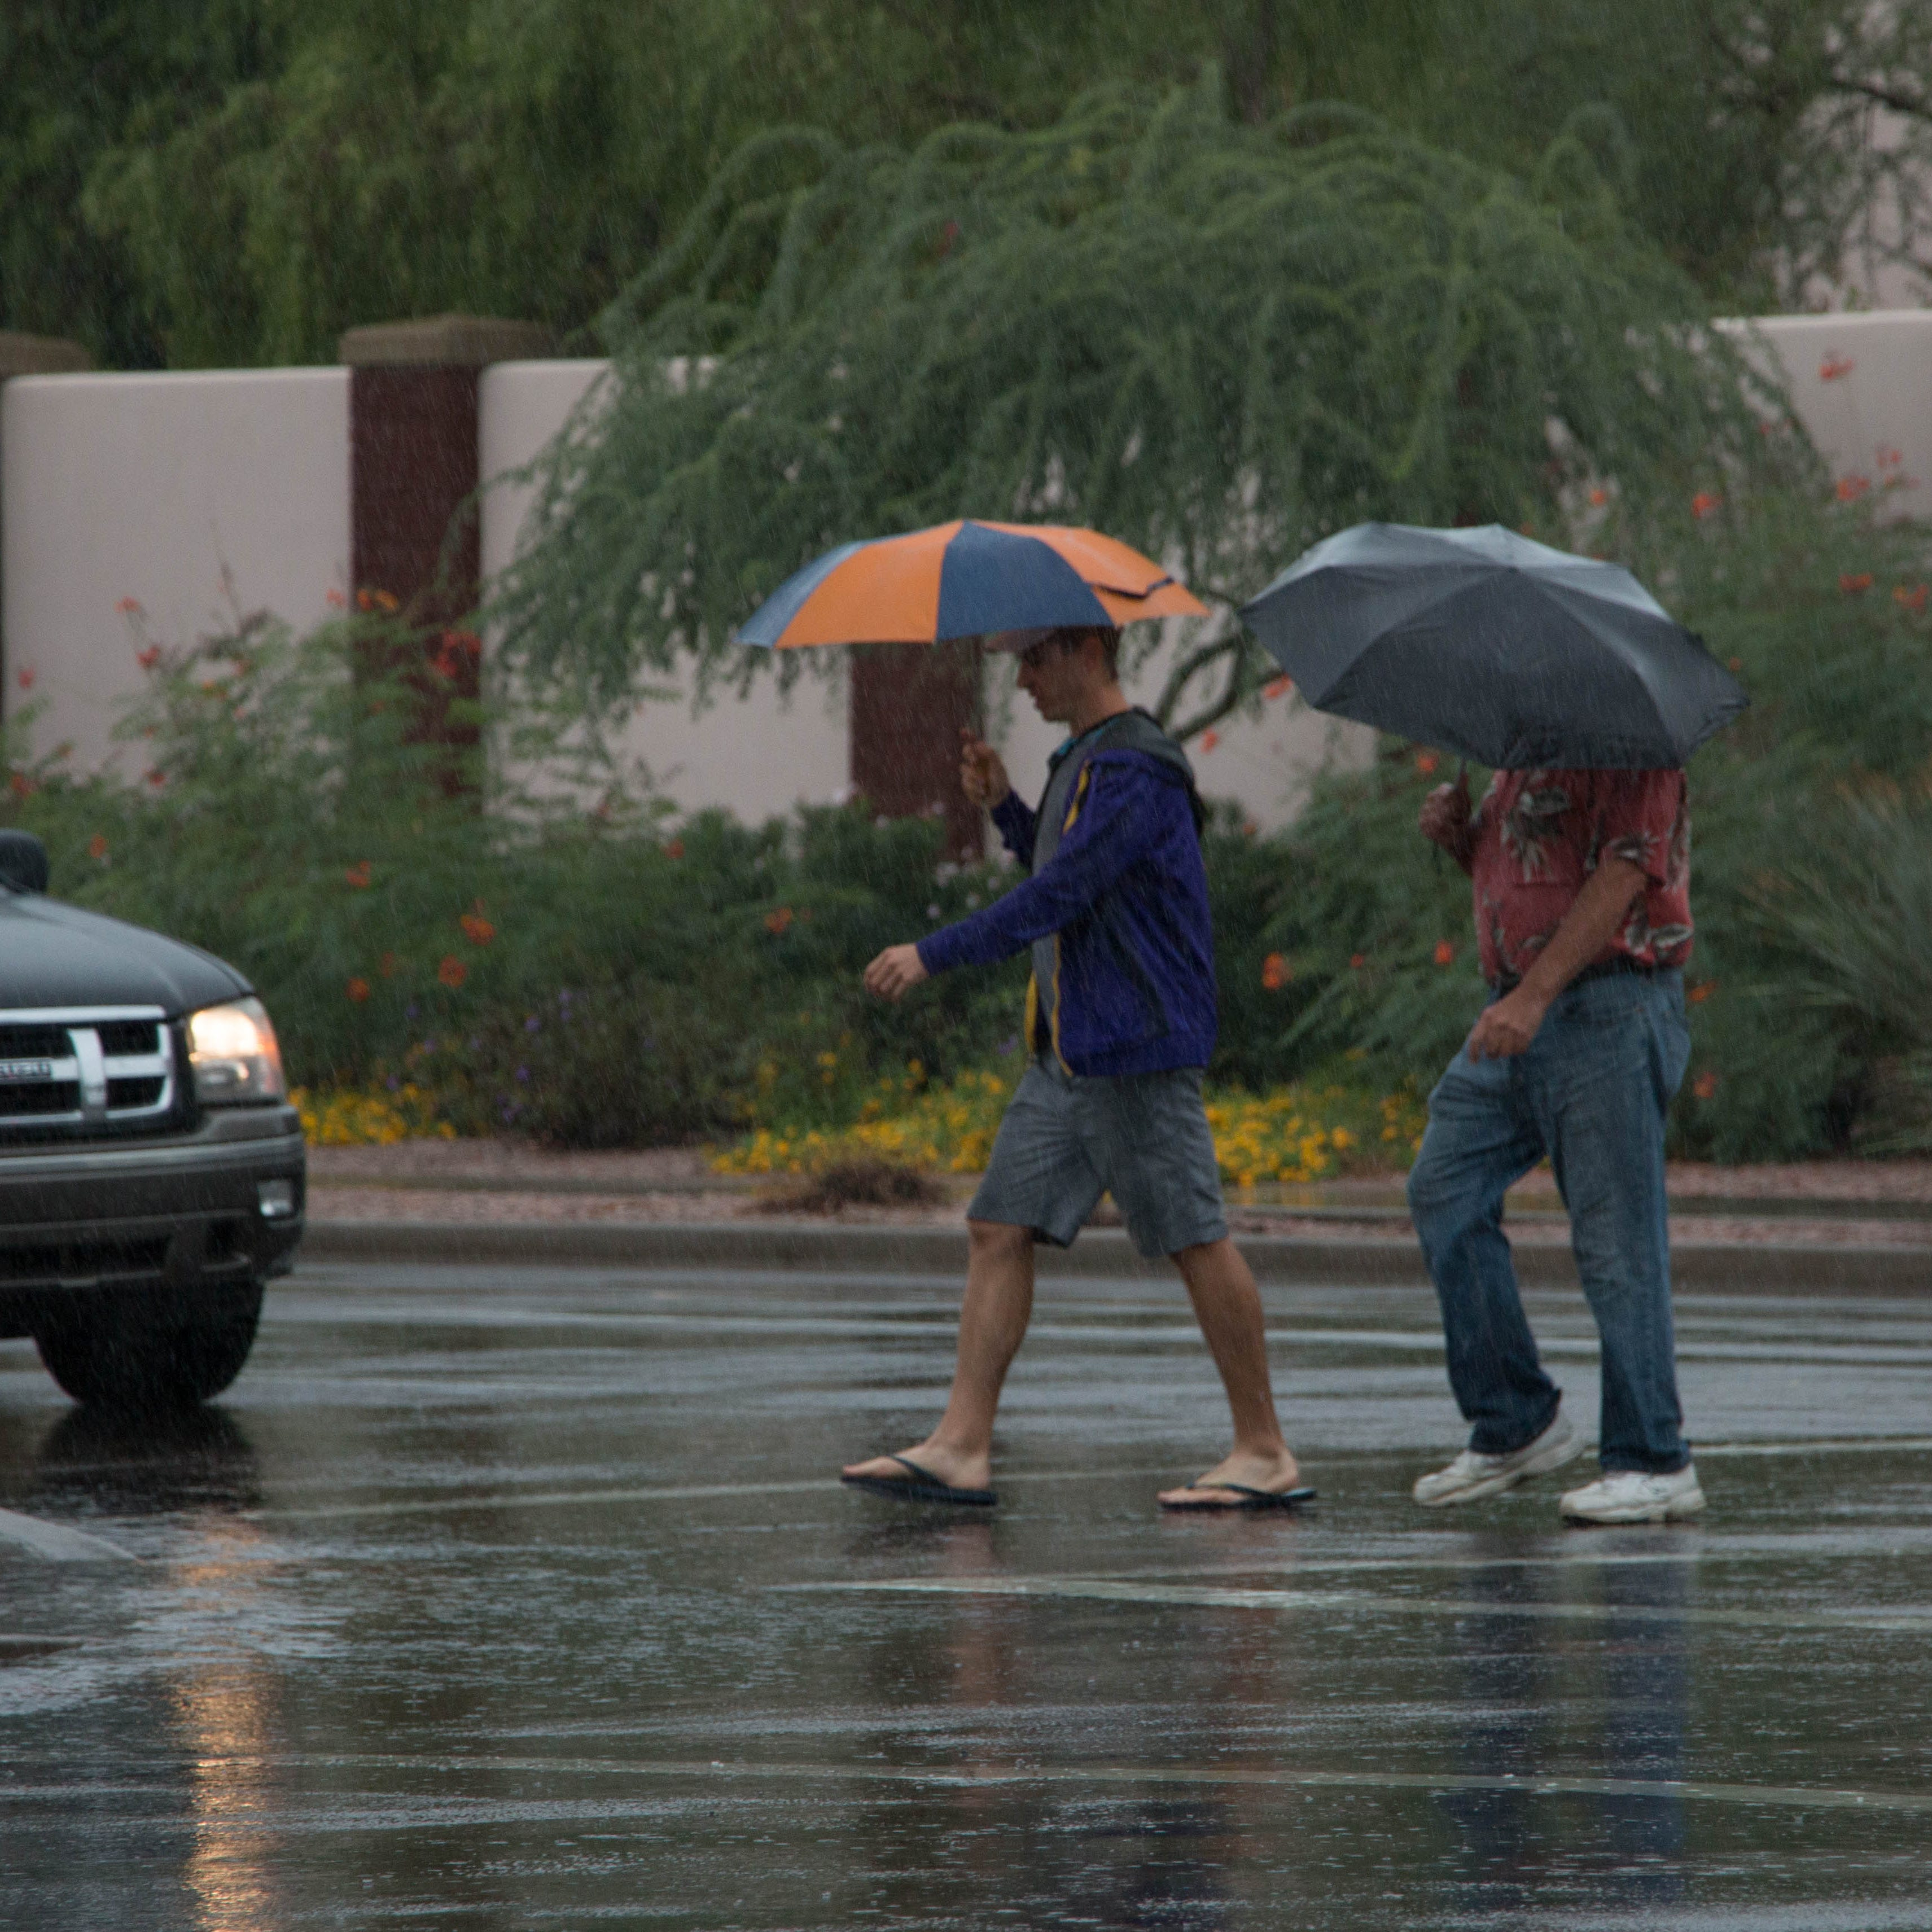 Wet weather to continue in parts of Phoenix through Tuesday